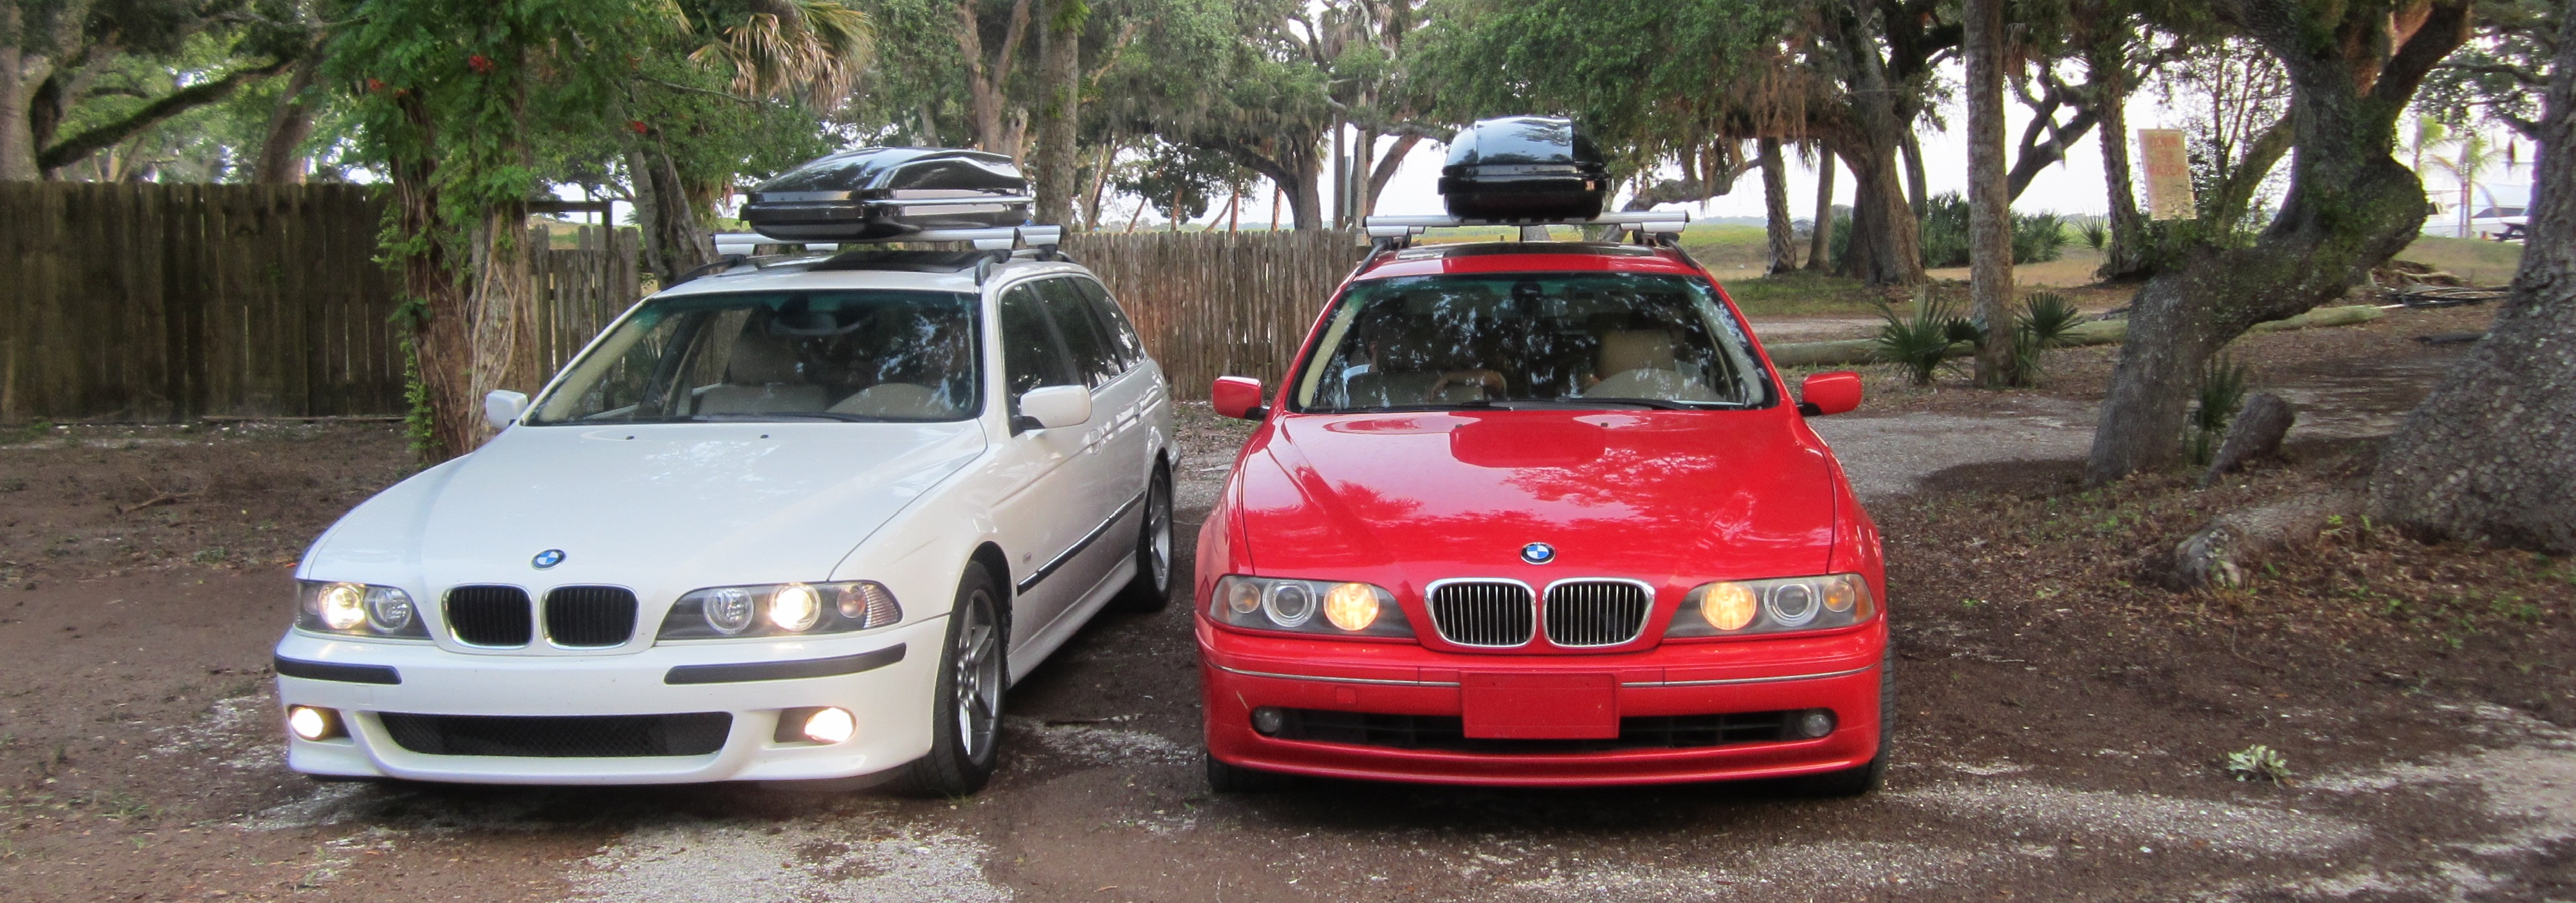 Bimmer of Atlanta use only quality parts, provide only quality service.